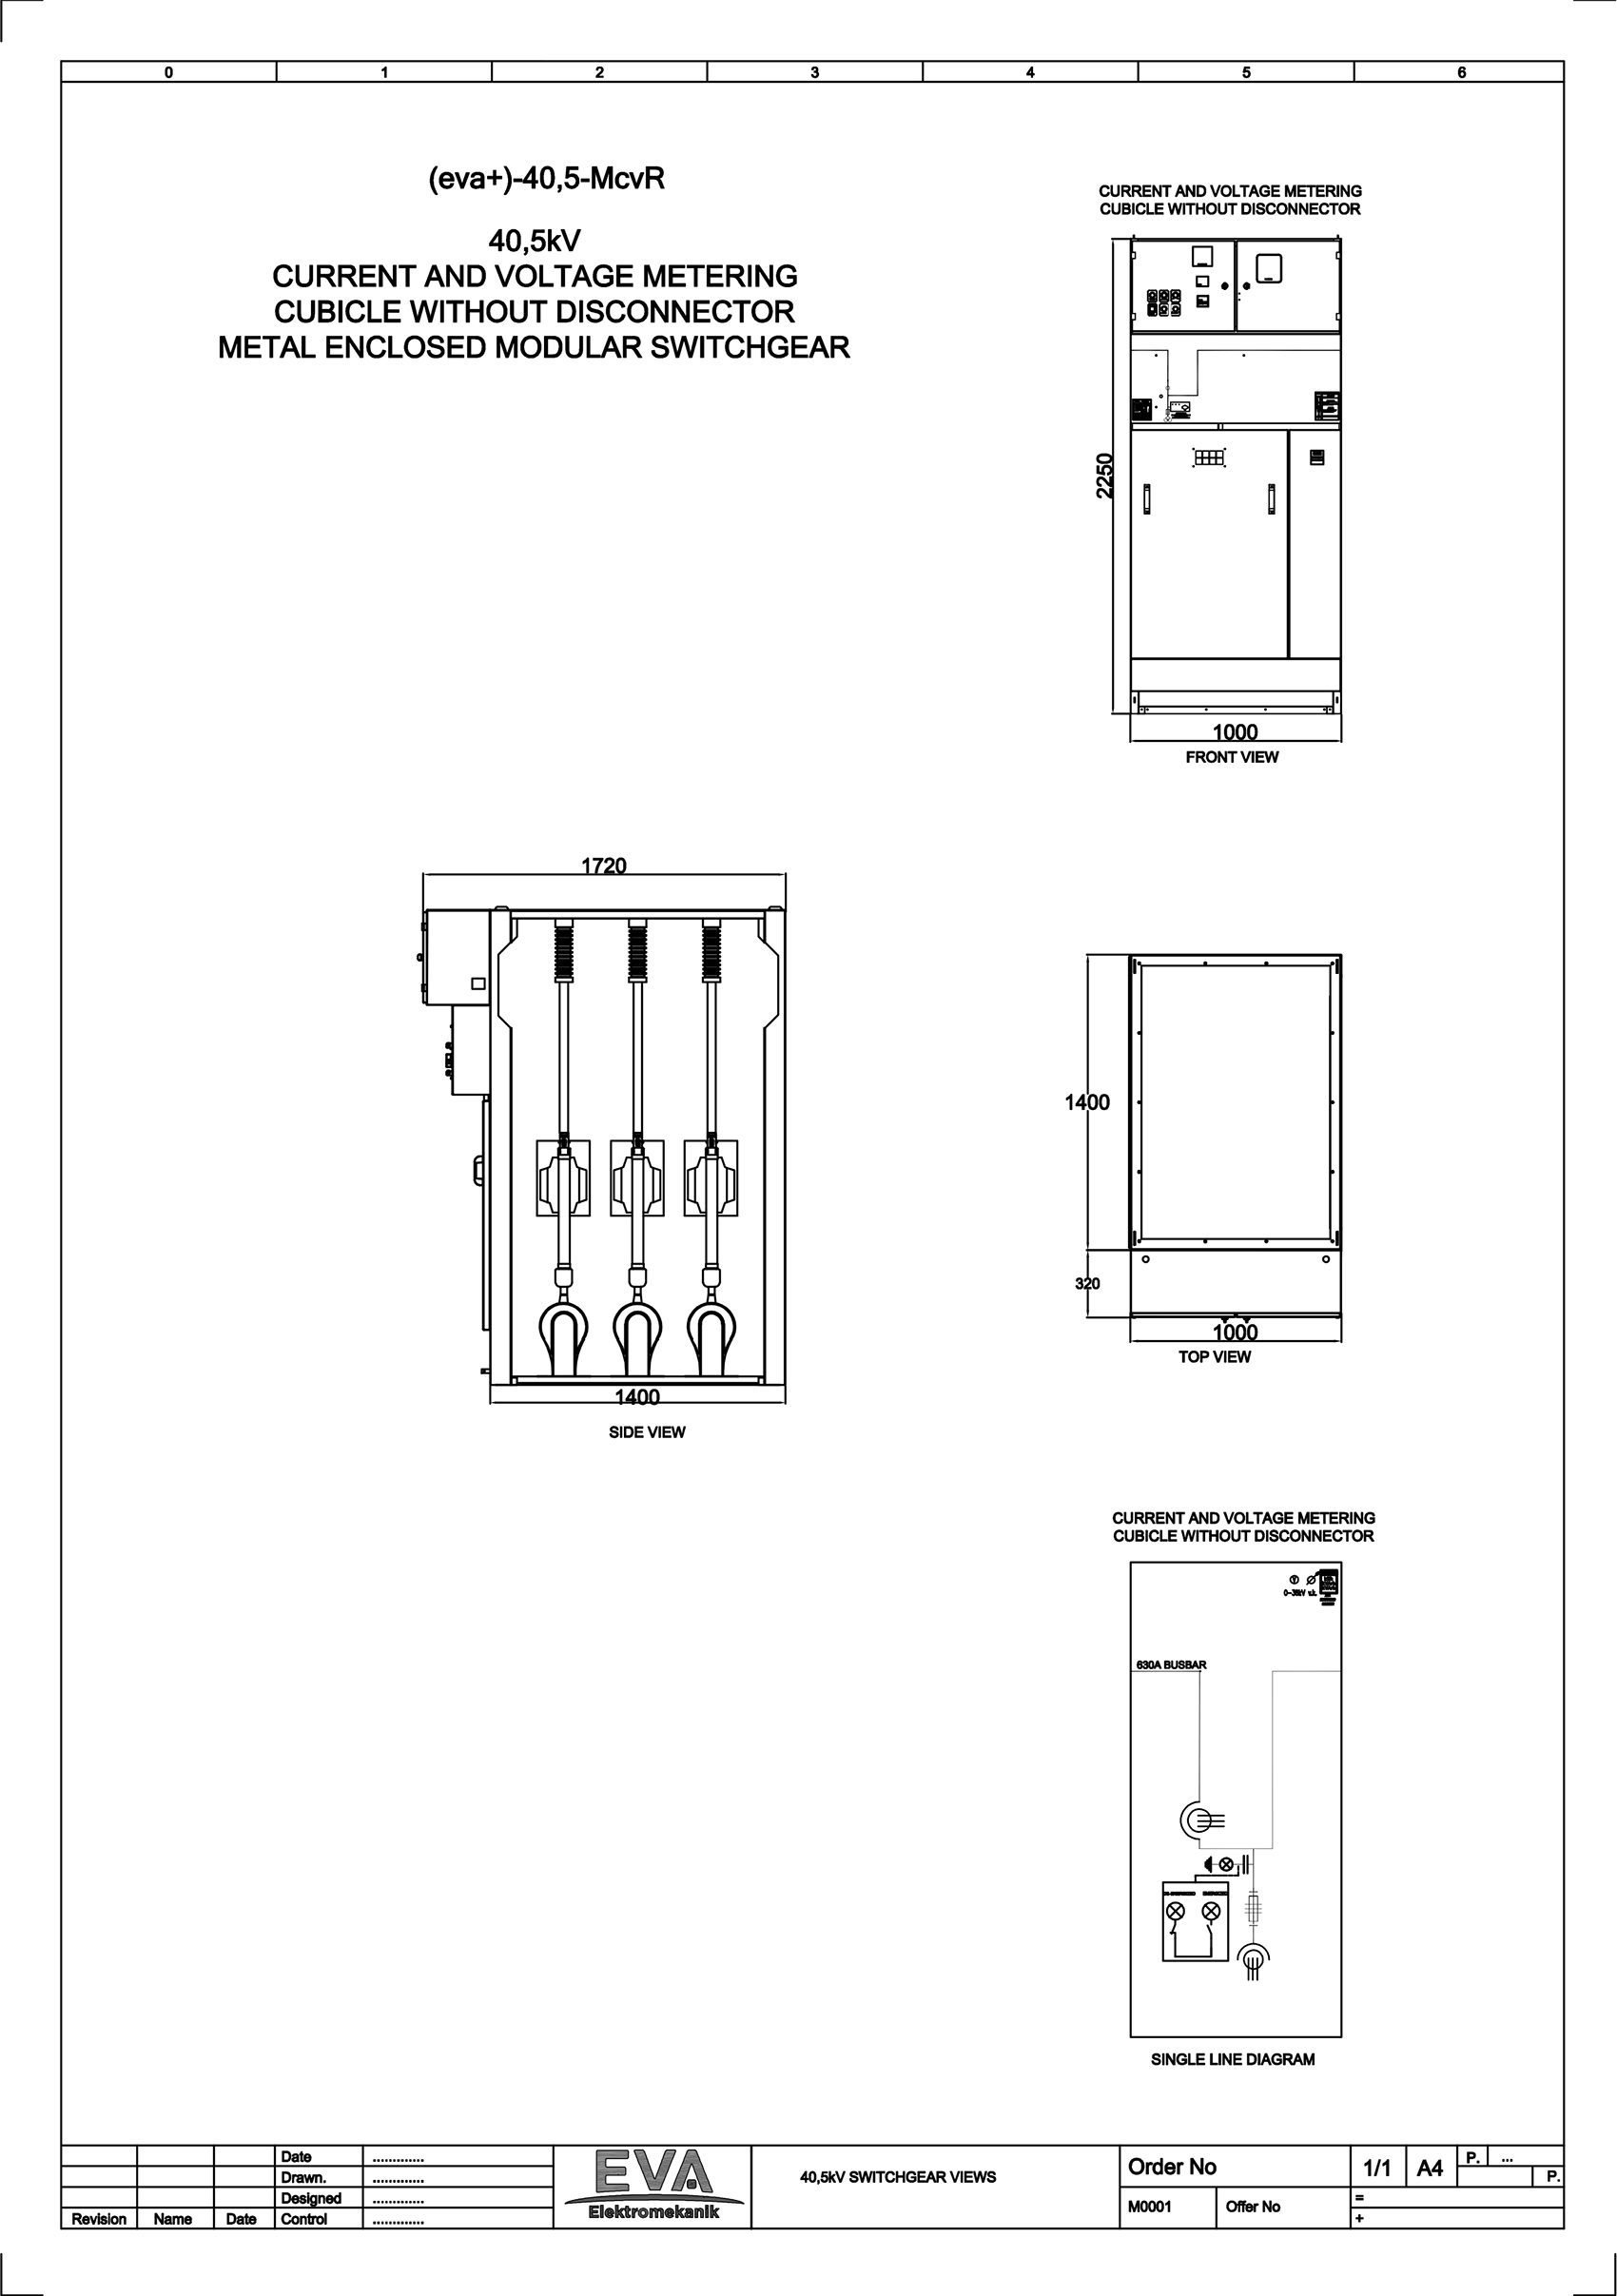 Current and Voltage Metering Cubicle without Disconnector